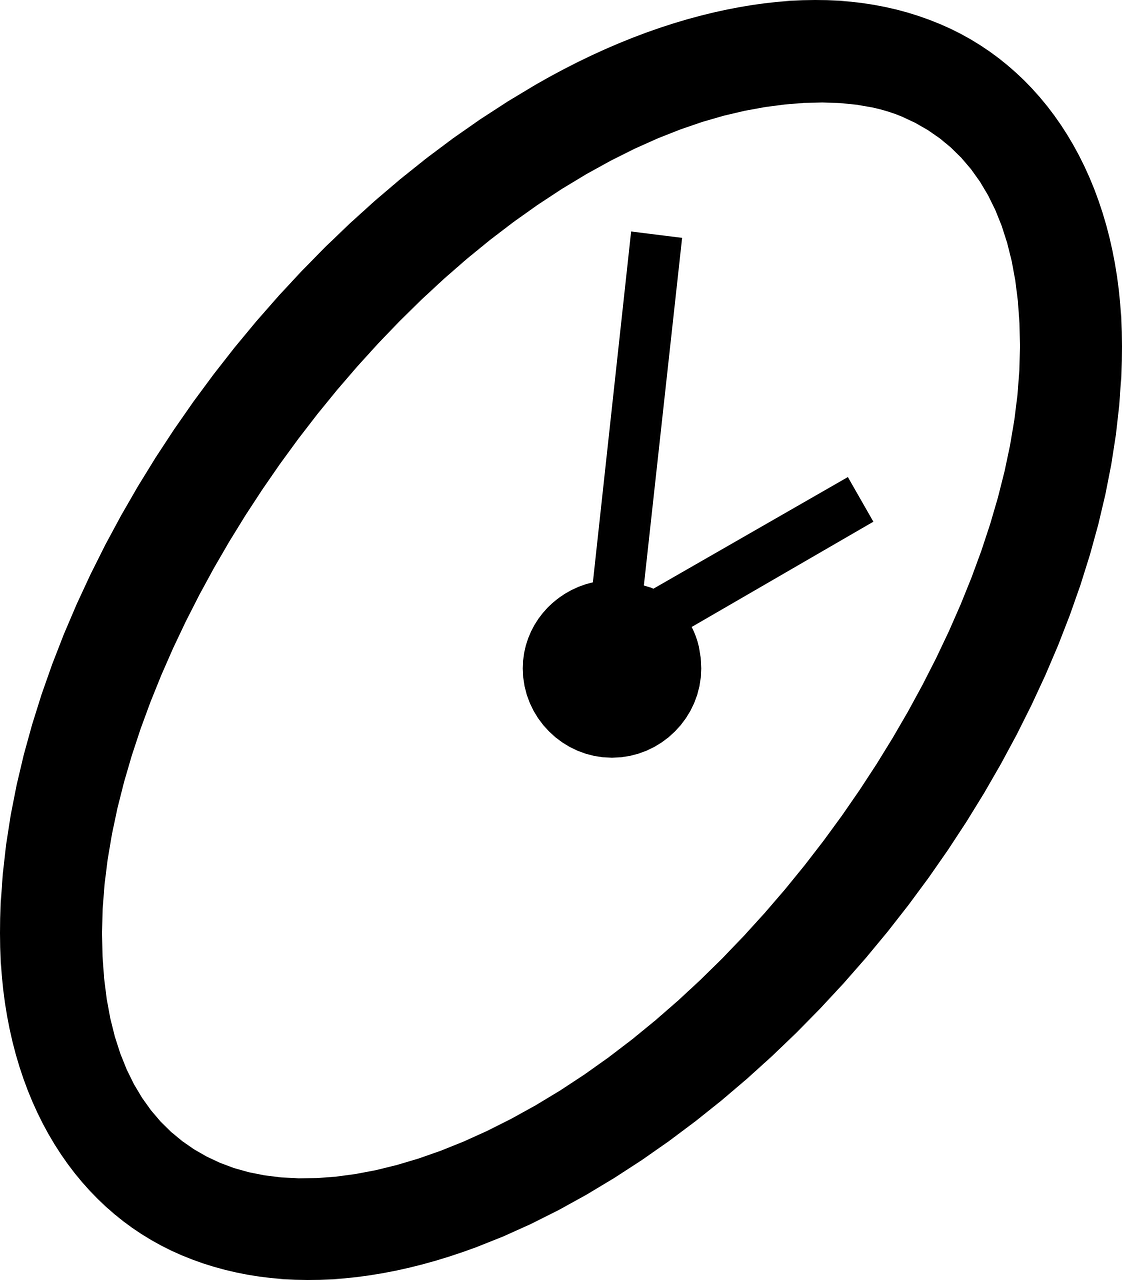 black and white line drawing of a clock